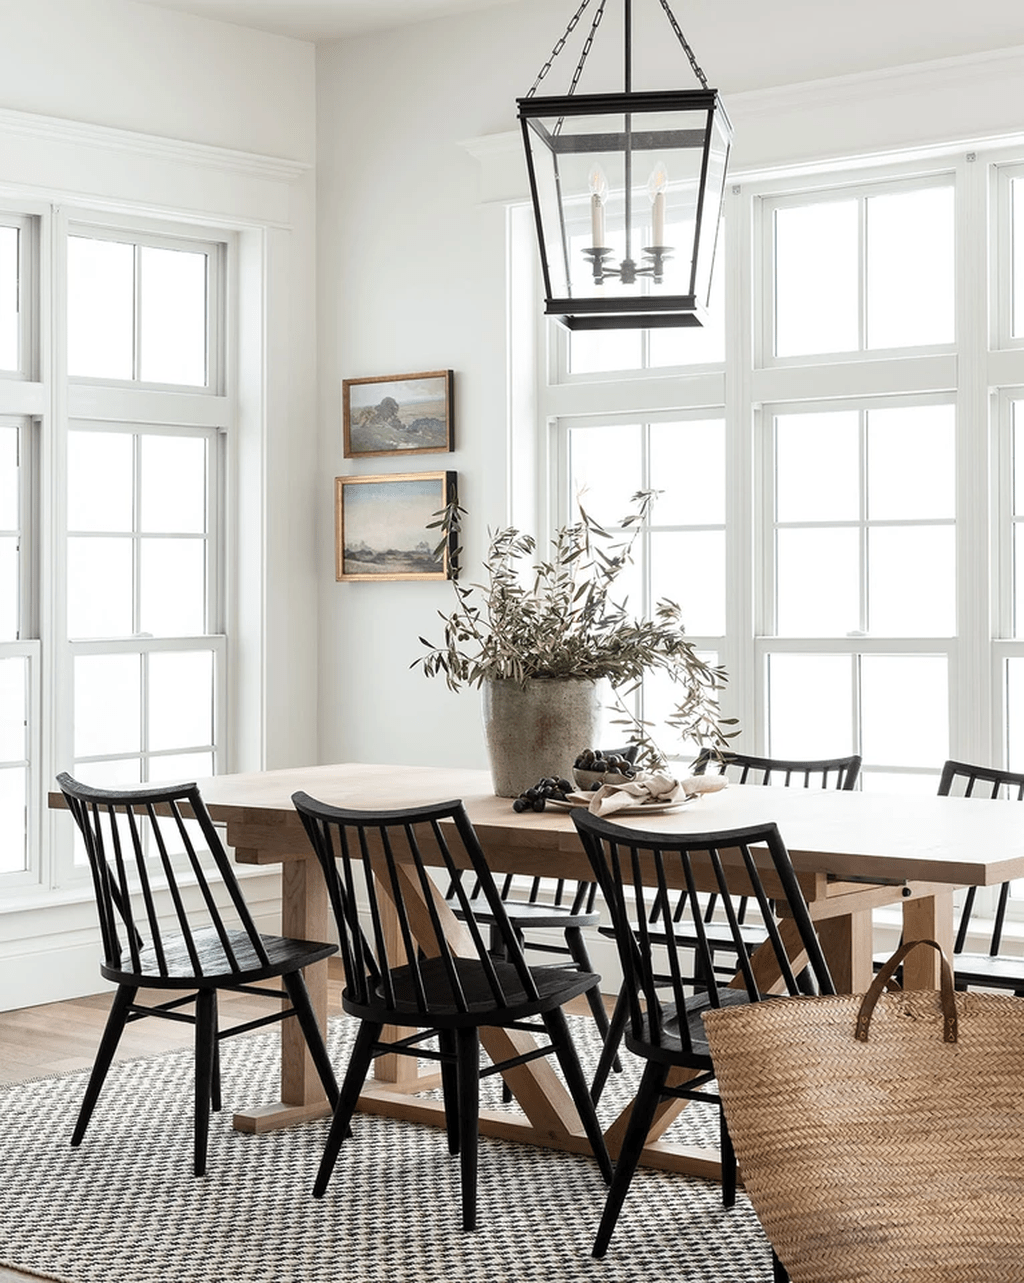 Fabulous Contemporary Dining Room Decorating Ideas 13